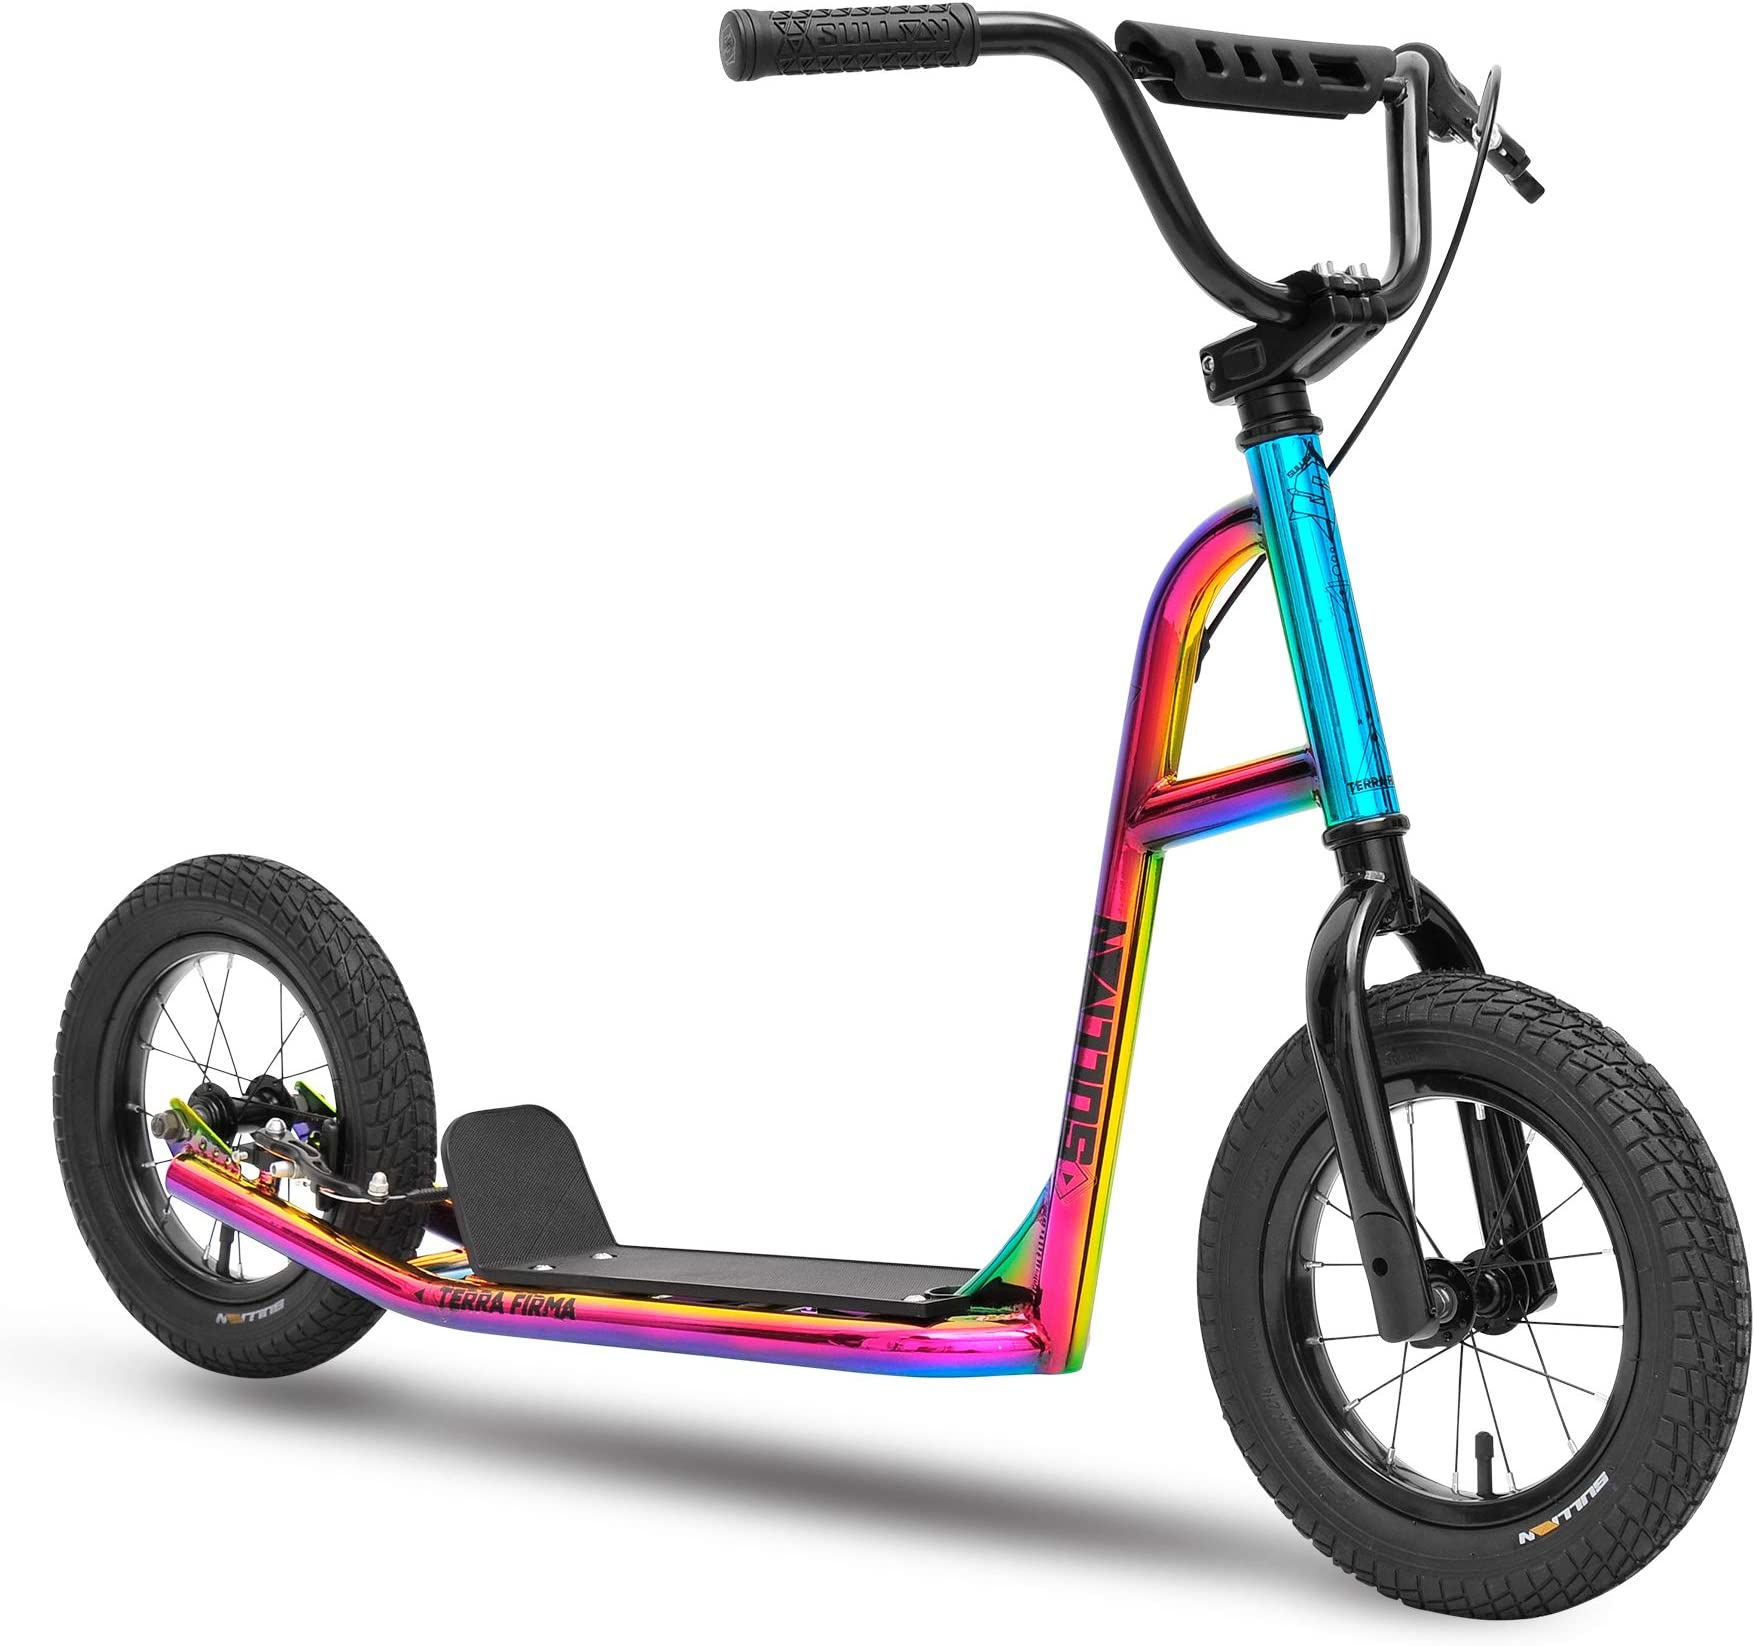 "Sullivan Terra Firma 12"" Scooter neo Chrome/Black, for Ages 8-13, All Terrain Inflatable Tires"